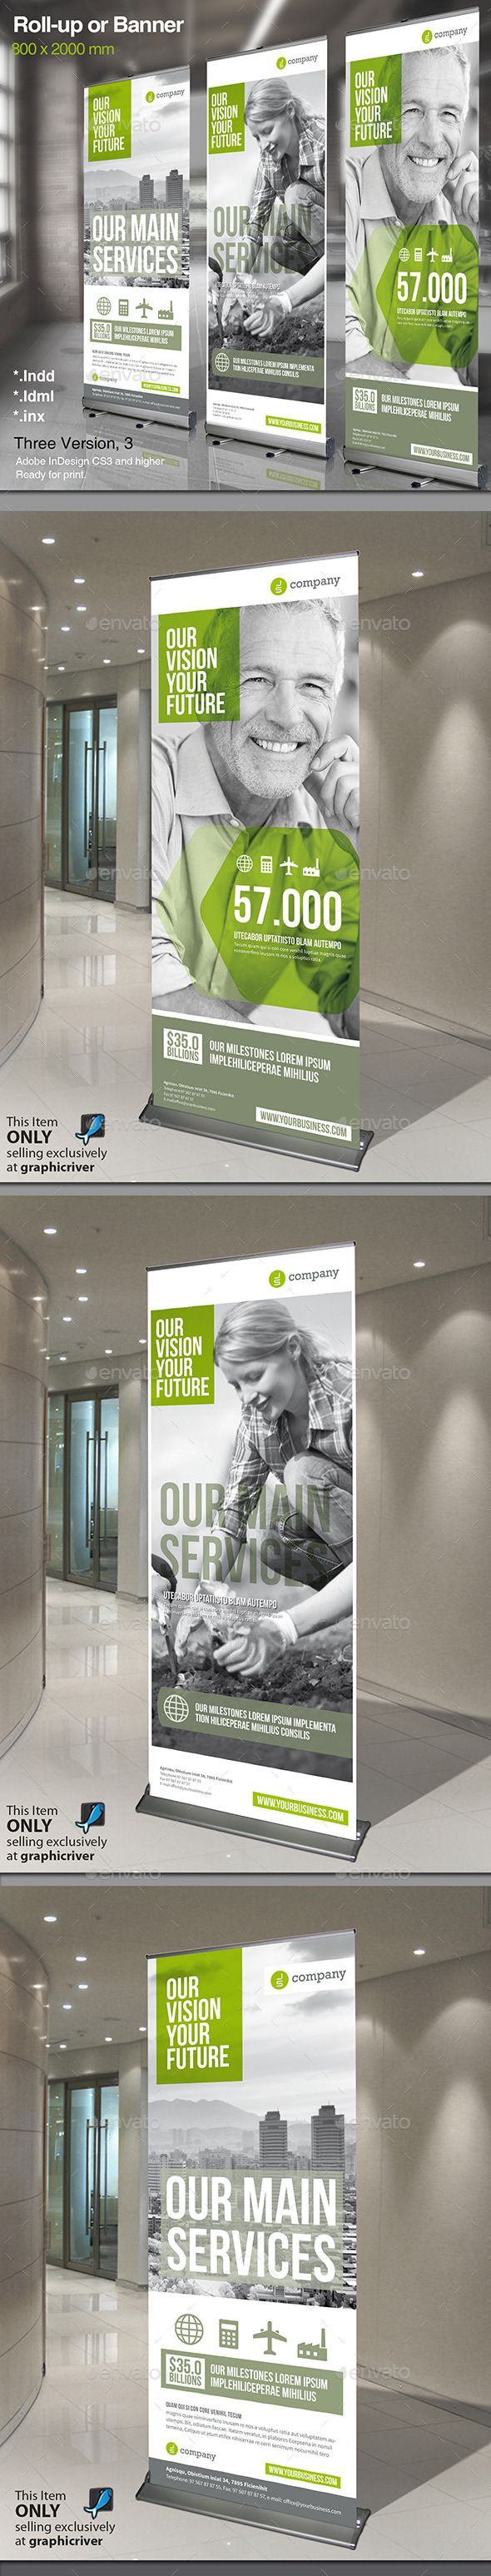 Corporate Roll-up or Banner - Signage Print Templates